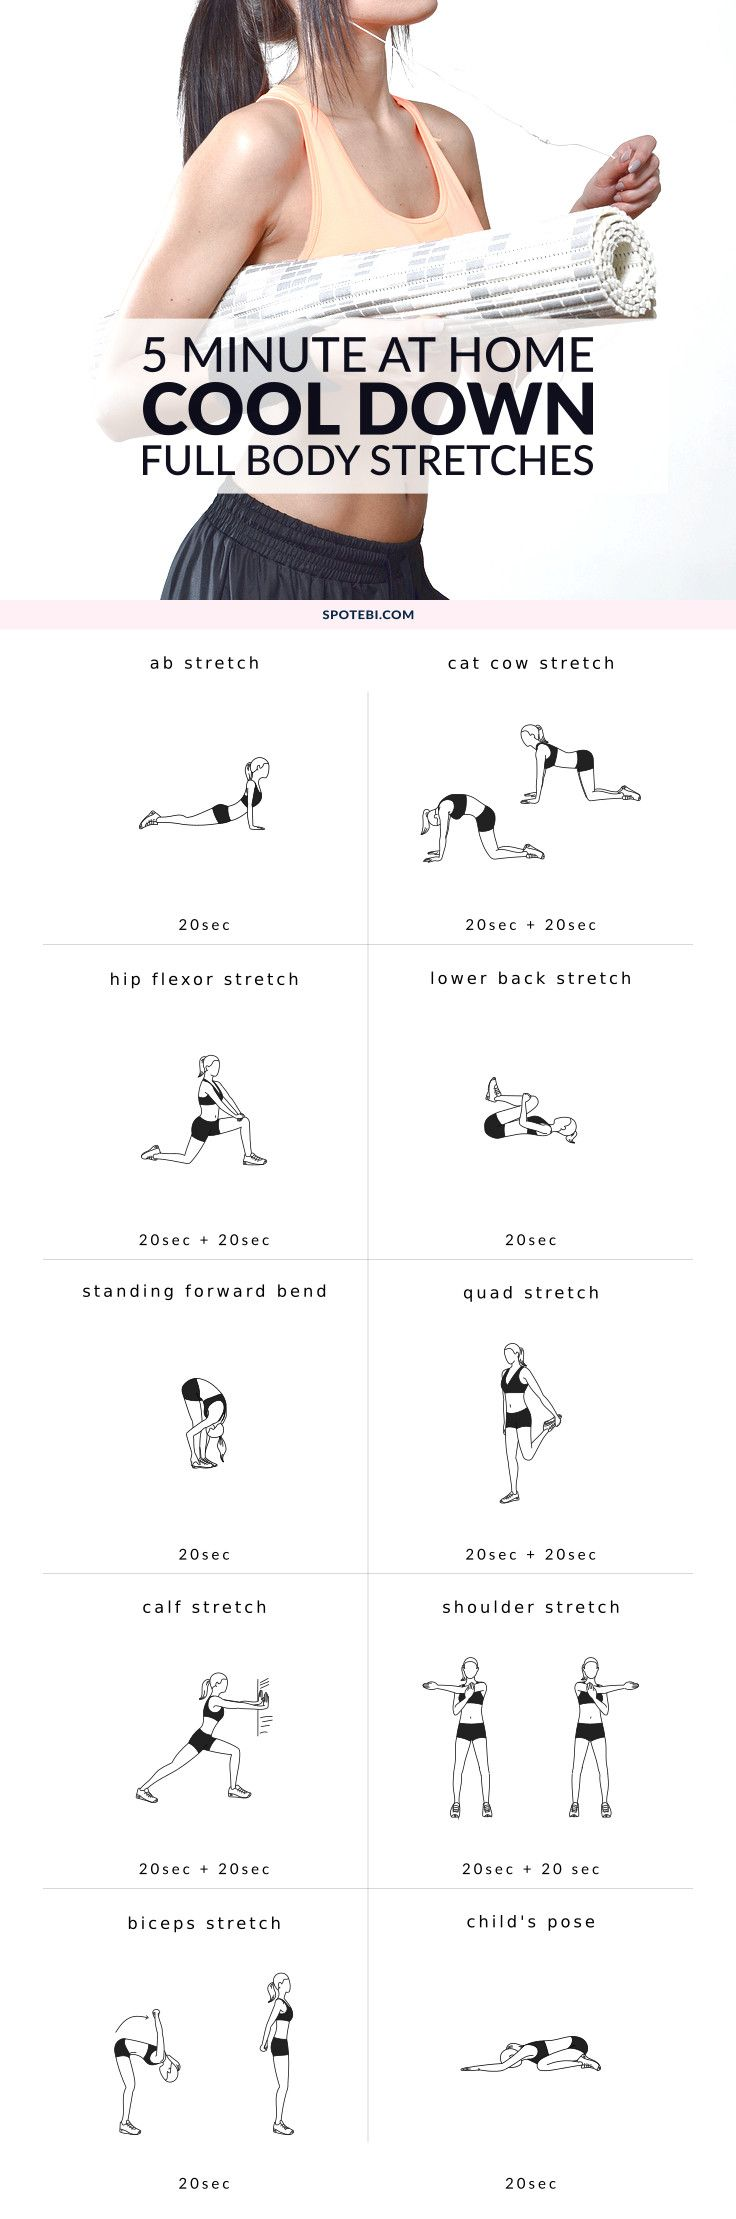 Stretch and relax your entire body with this 5 minute routine. Cool down exercises to increase muscle control, flexibility and range of motion. Have fun! http://www.spotebi.com/workout-routines/5-minute-full-body-cool-down-exercises/